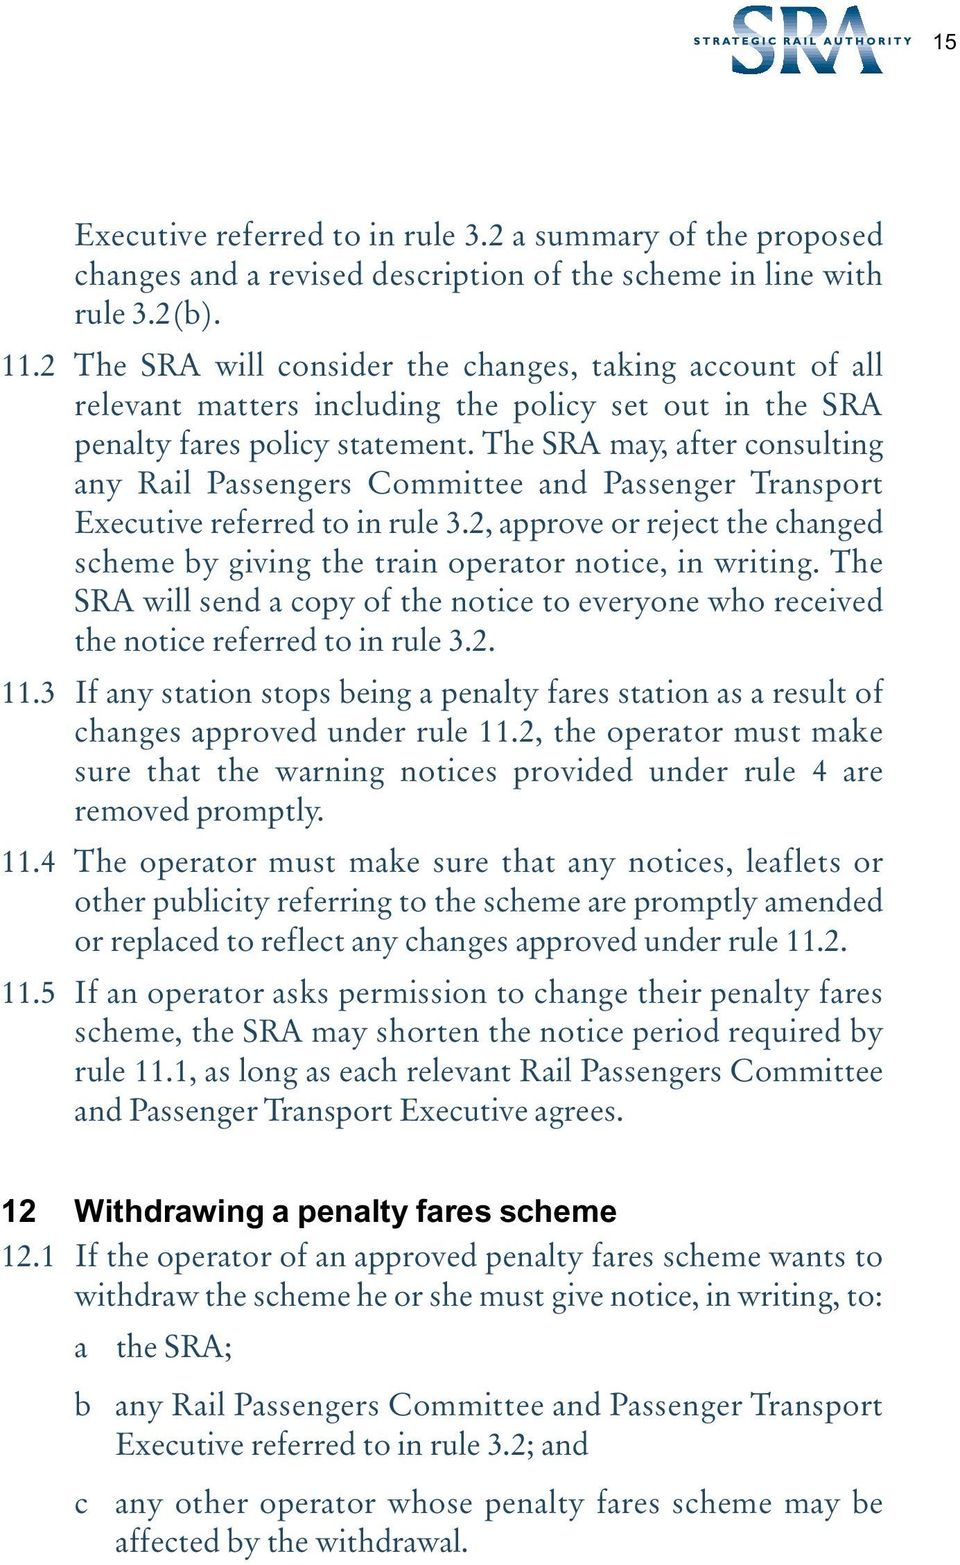 The SRA may, after consulting any Rail Passengers Committee and Passenger Transport Executive referred to in rule 3.